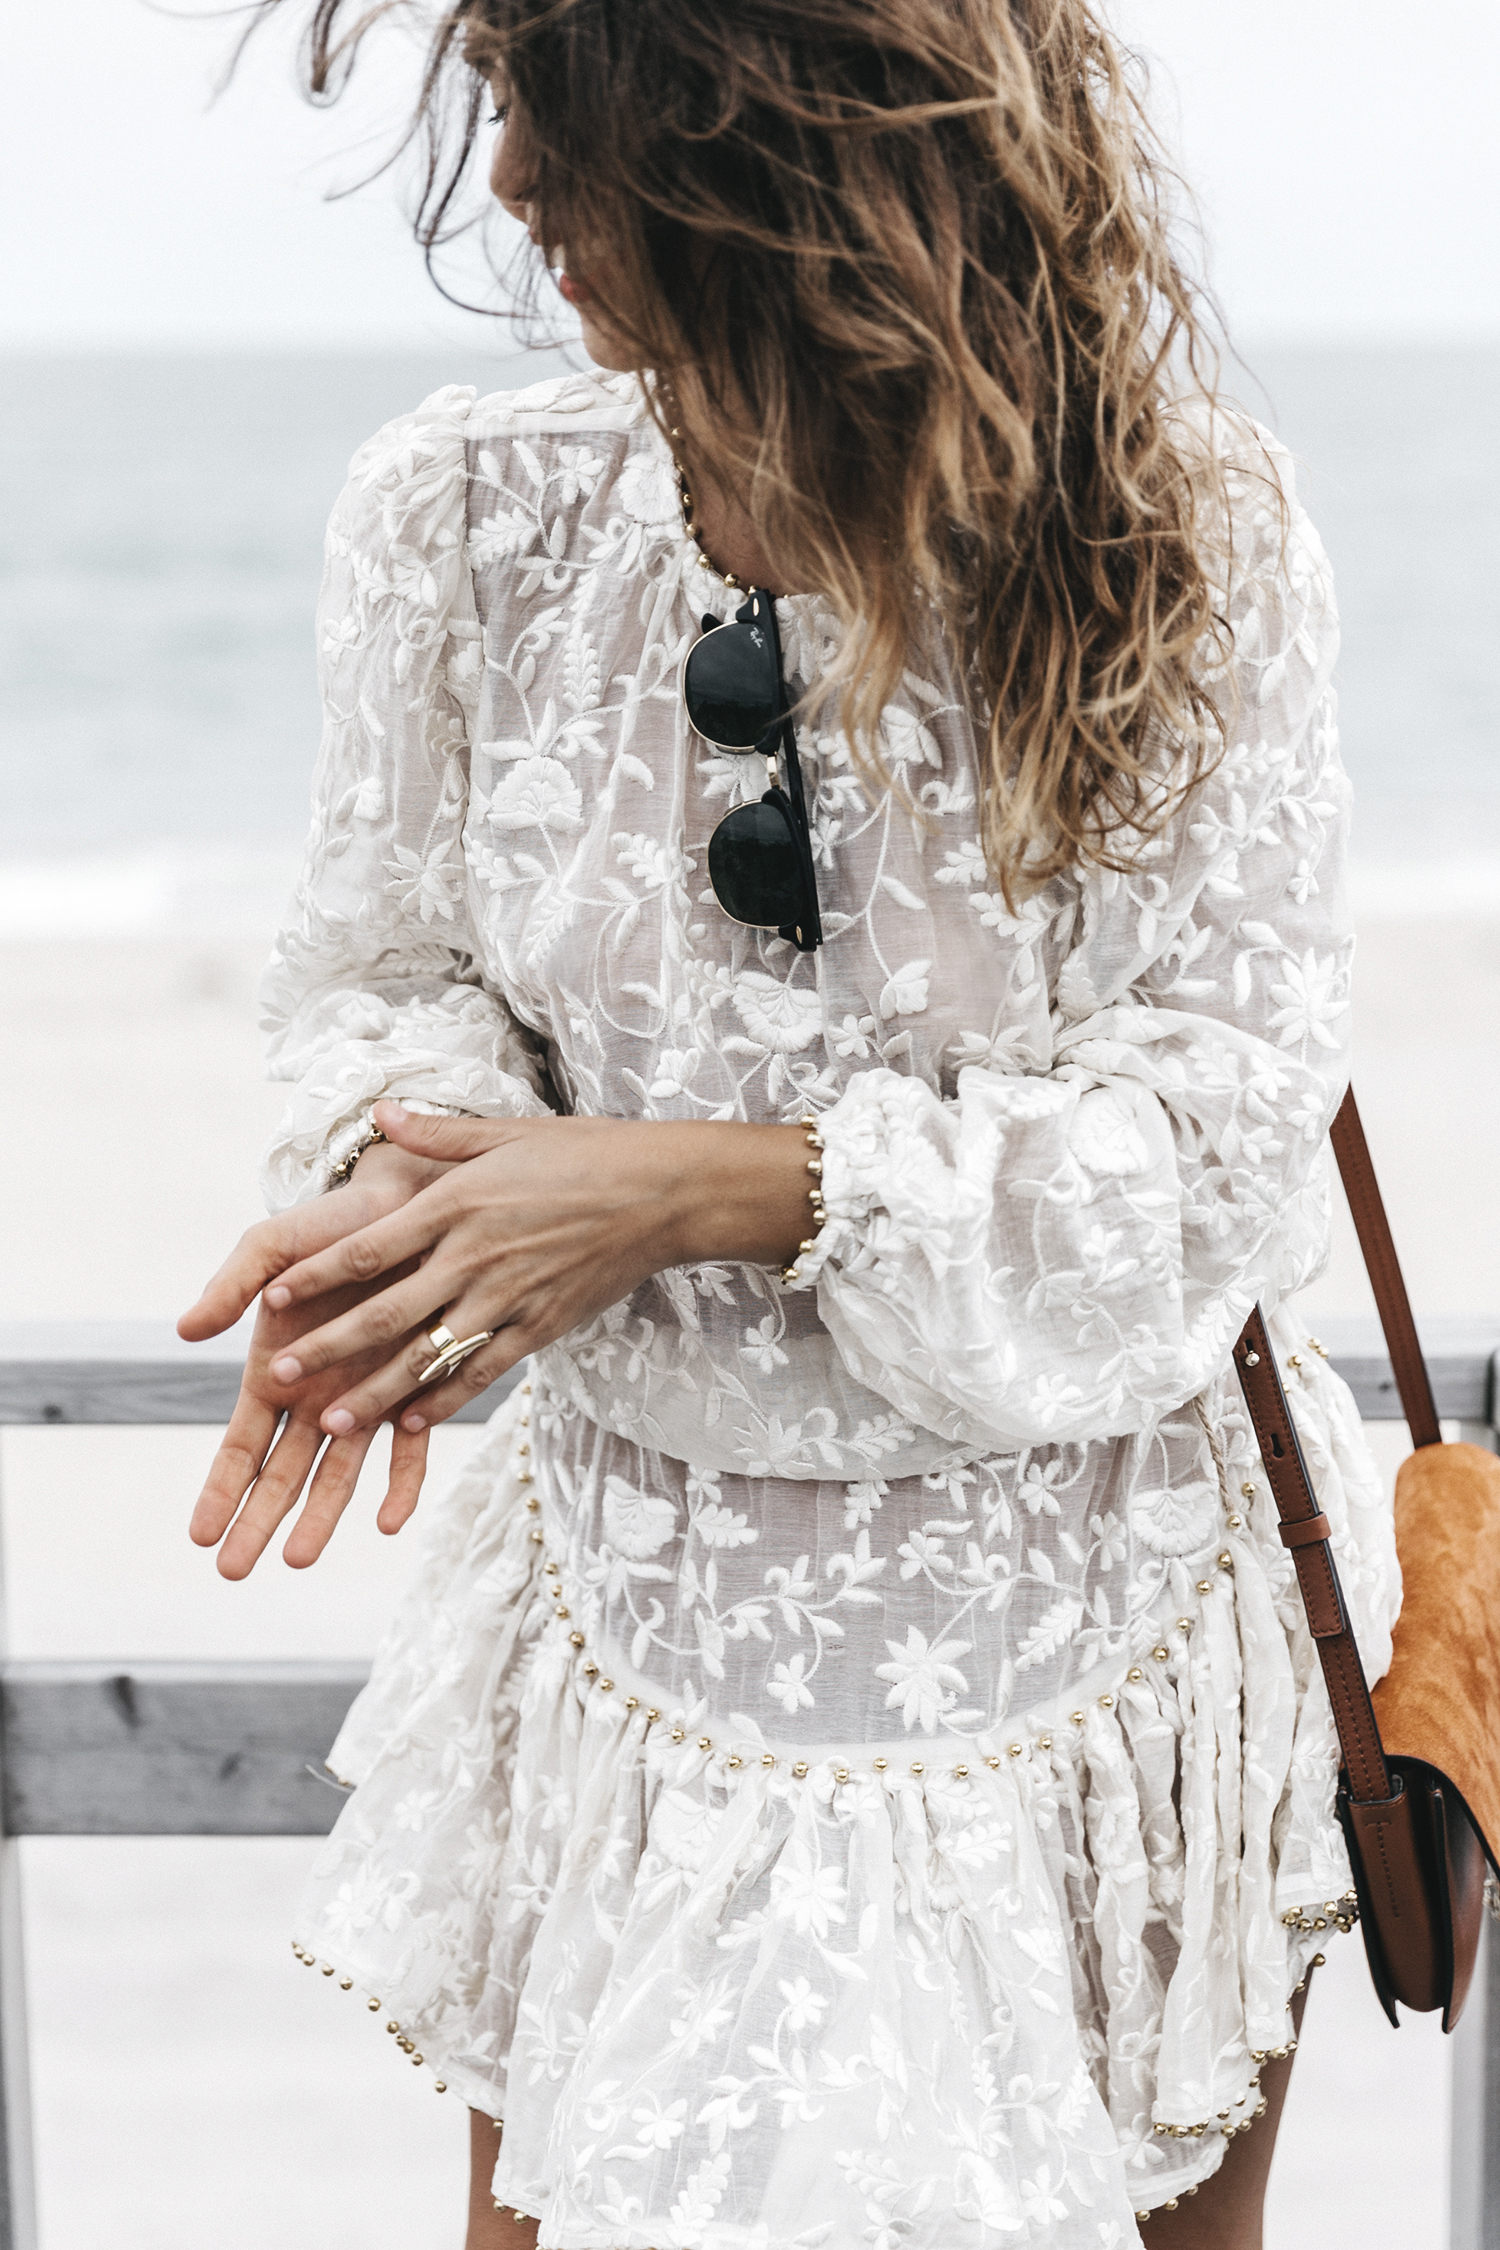 Revolve_in_The_Hamptons-Zimmermann-Embroidered_Dress-WHite_Dress-Chloe_Fay_Bag-Chloe_Wedges-Outfit-177